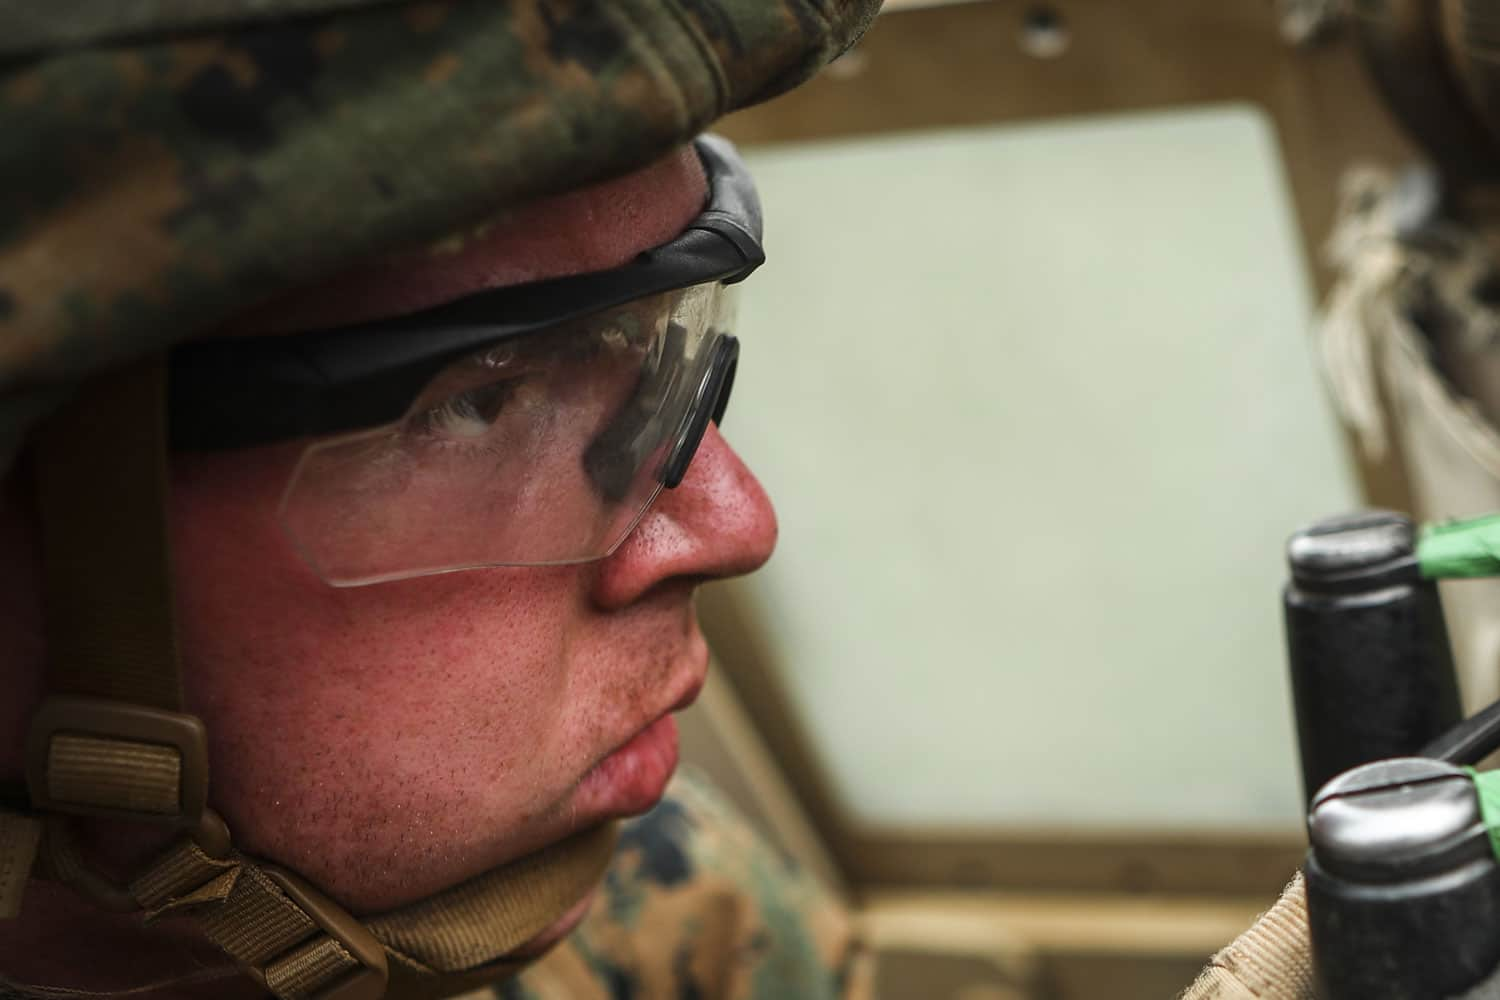 A U.S. Marine with Combined Anti-Armor Team 2, Weapons Company, 1st Battalion, 3rd Marine Regiment, fires a mounted M2 .50 caliber machine gun down range during Exercise Fuji Viper aboard Camp Fuji, Japan.